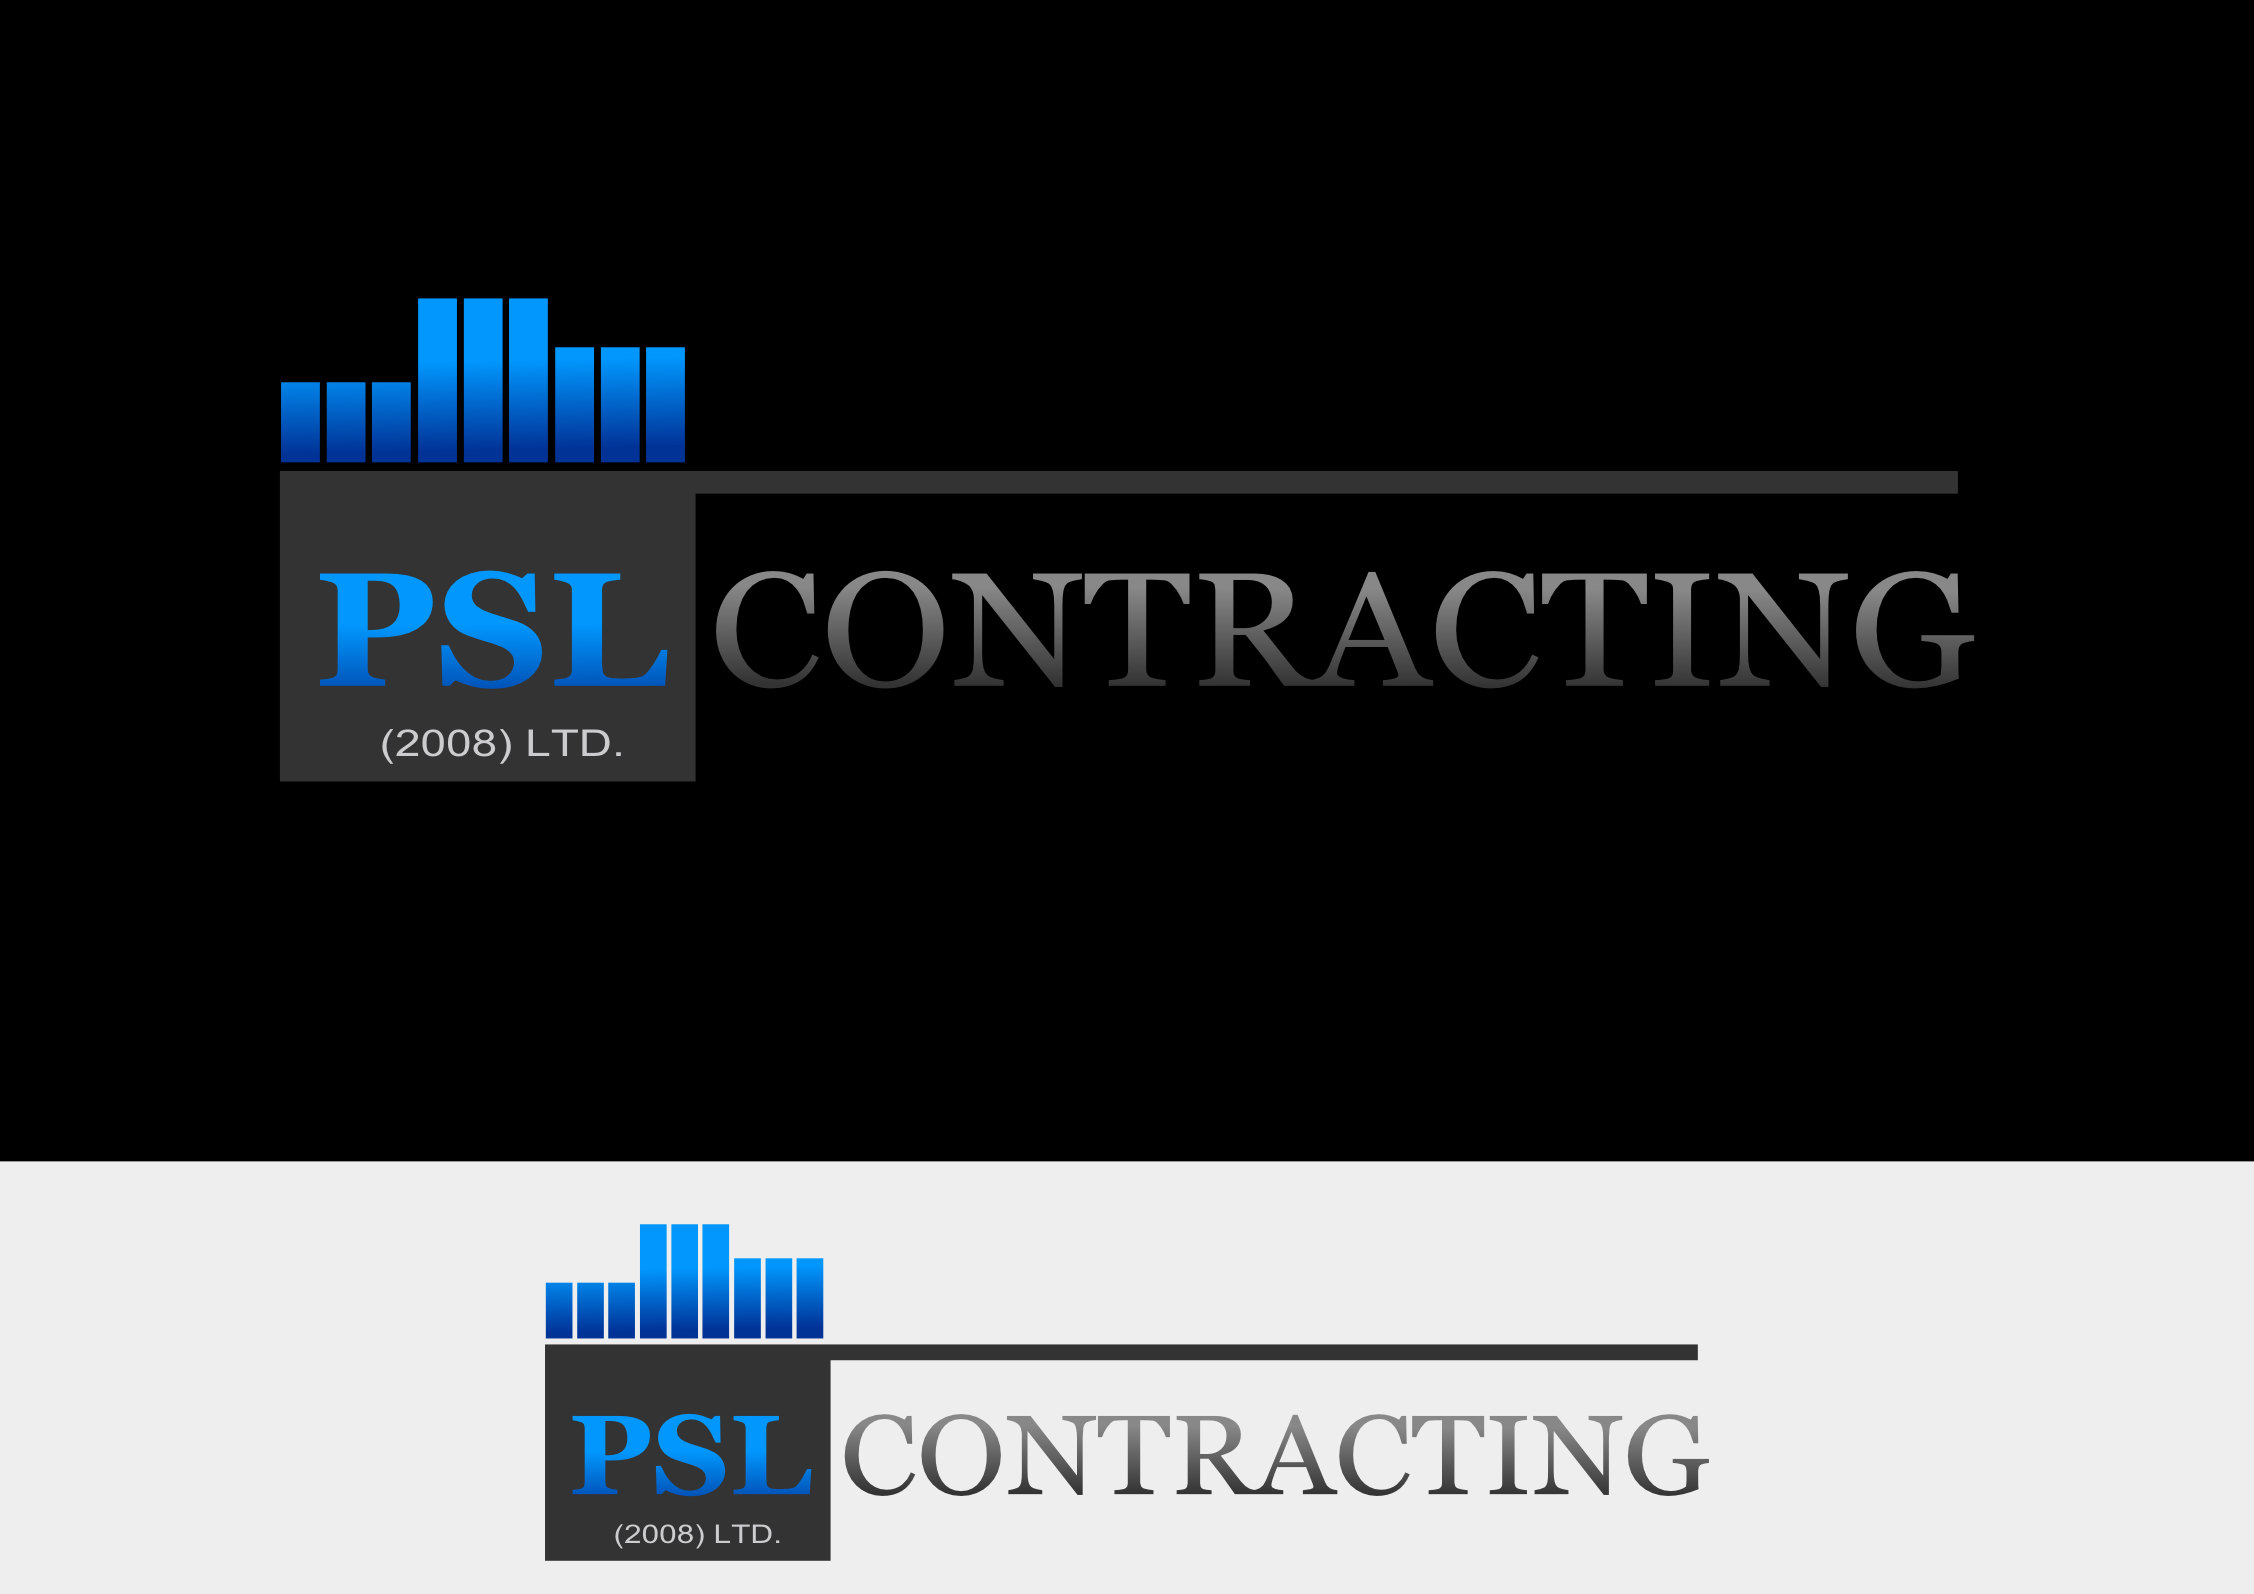 Logo Design by whoosef - Entry No. 27 in the Logo Design Contest PSL Contracting (2008) Ltd. Logo Design.